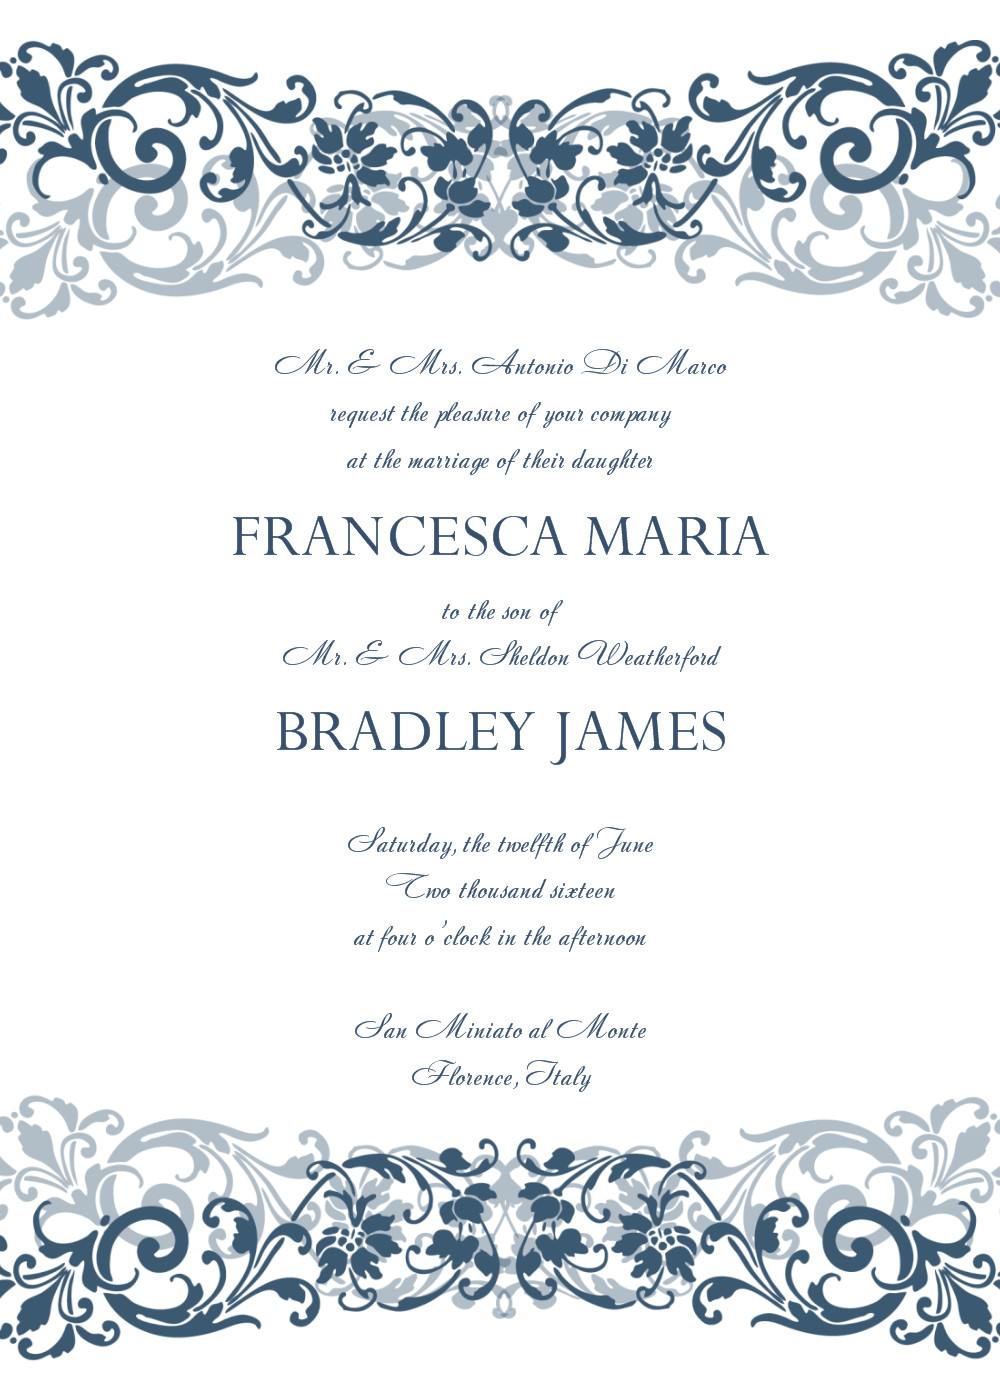 Free Printable Invitation Templates 8 Free Wedding Invitation Templates Excel Pdf formats